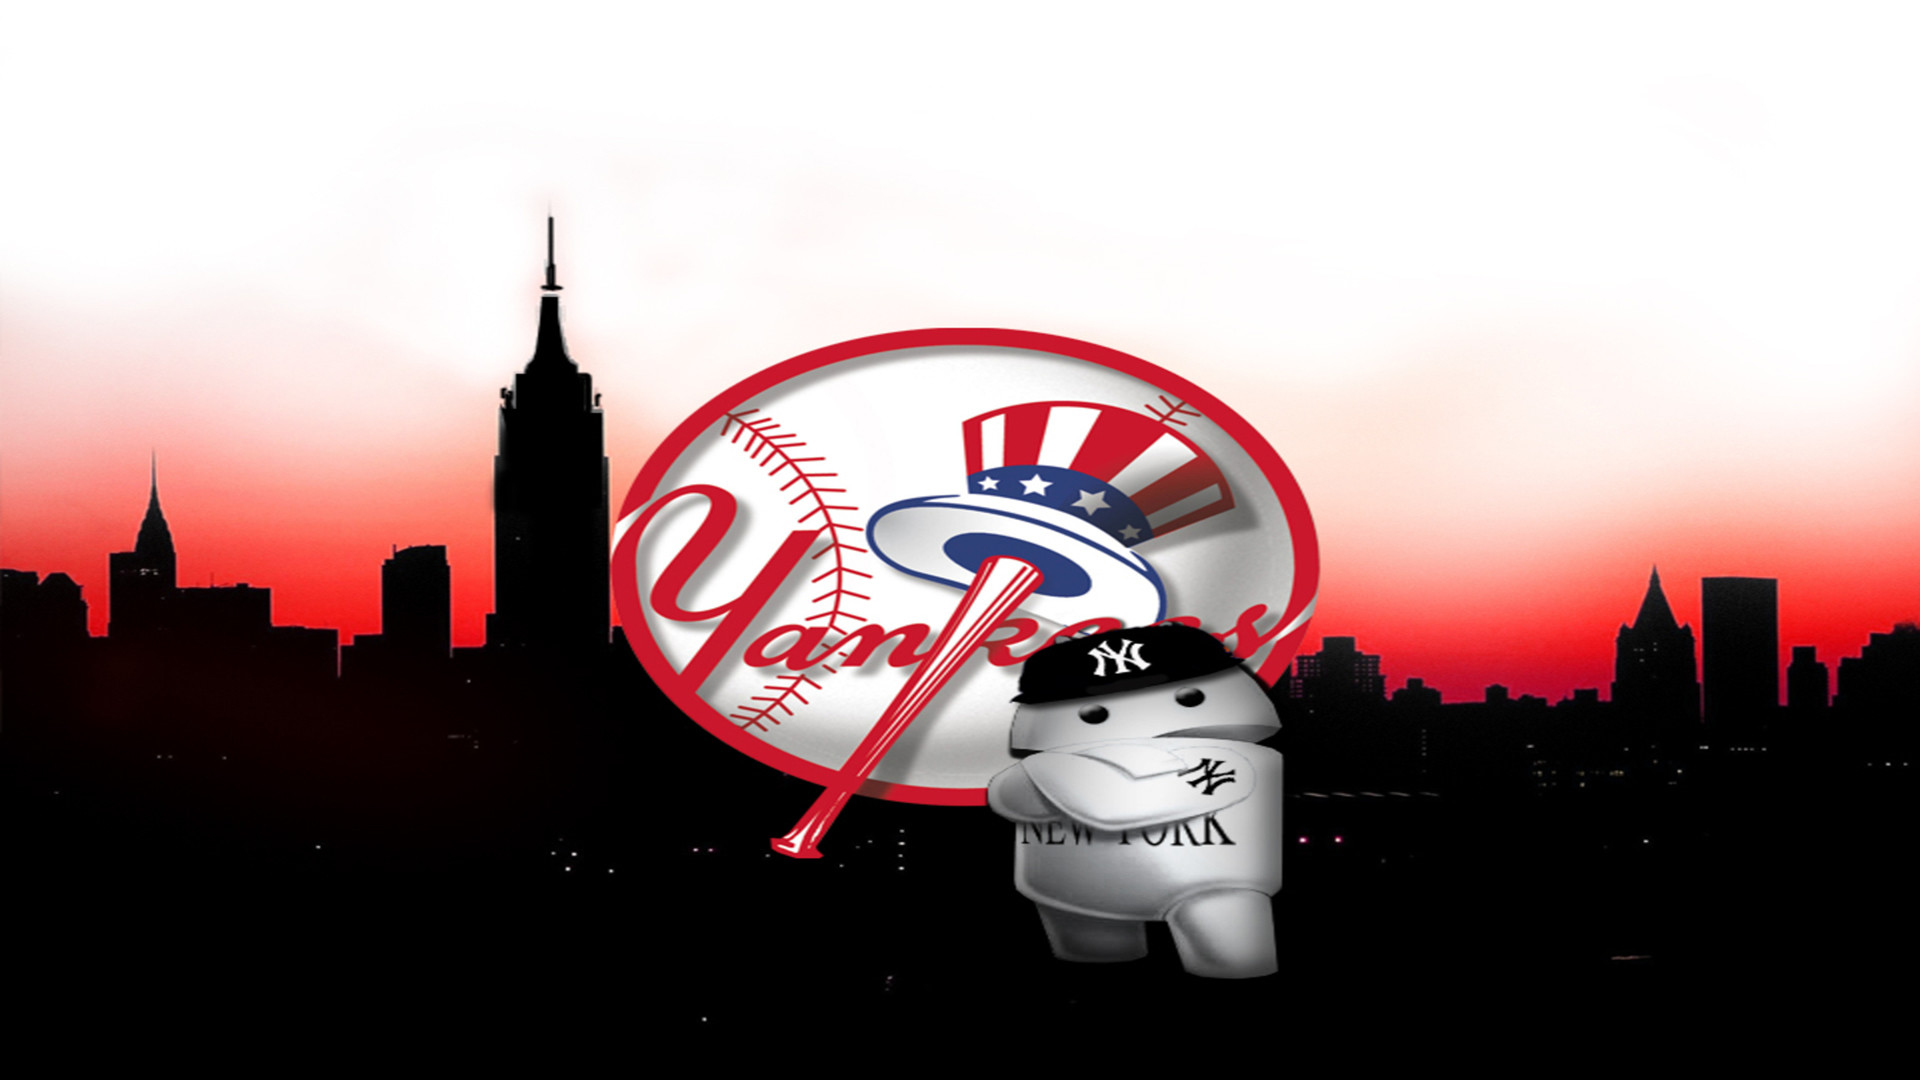 New York Yankees IPhone Wallpaper (67+ Images